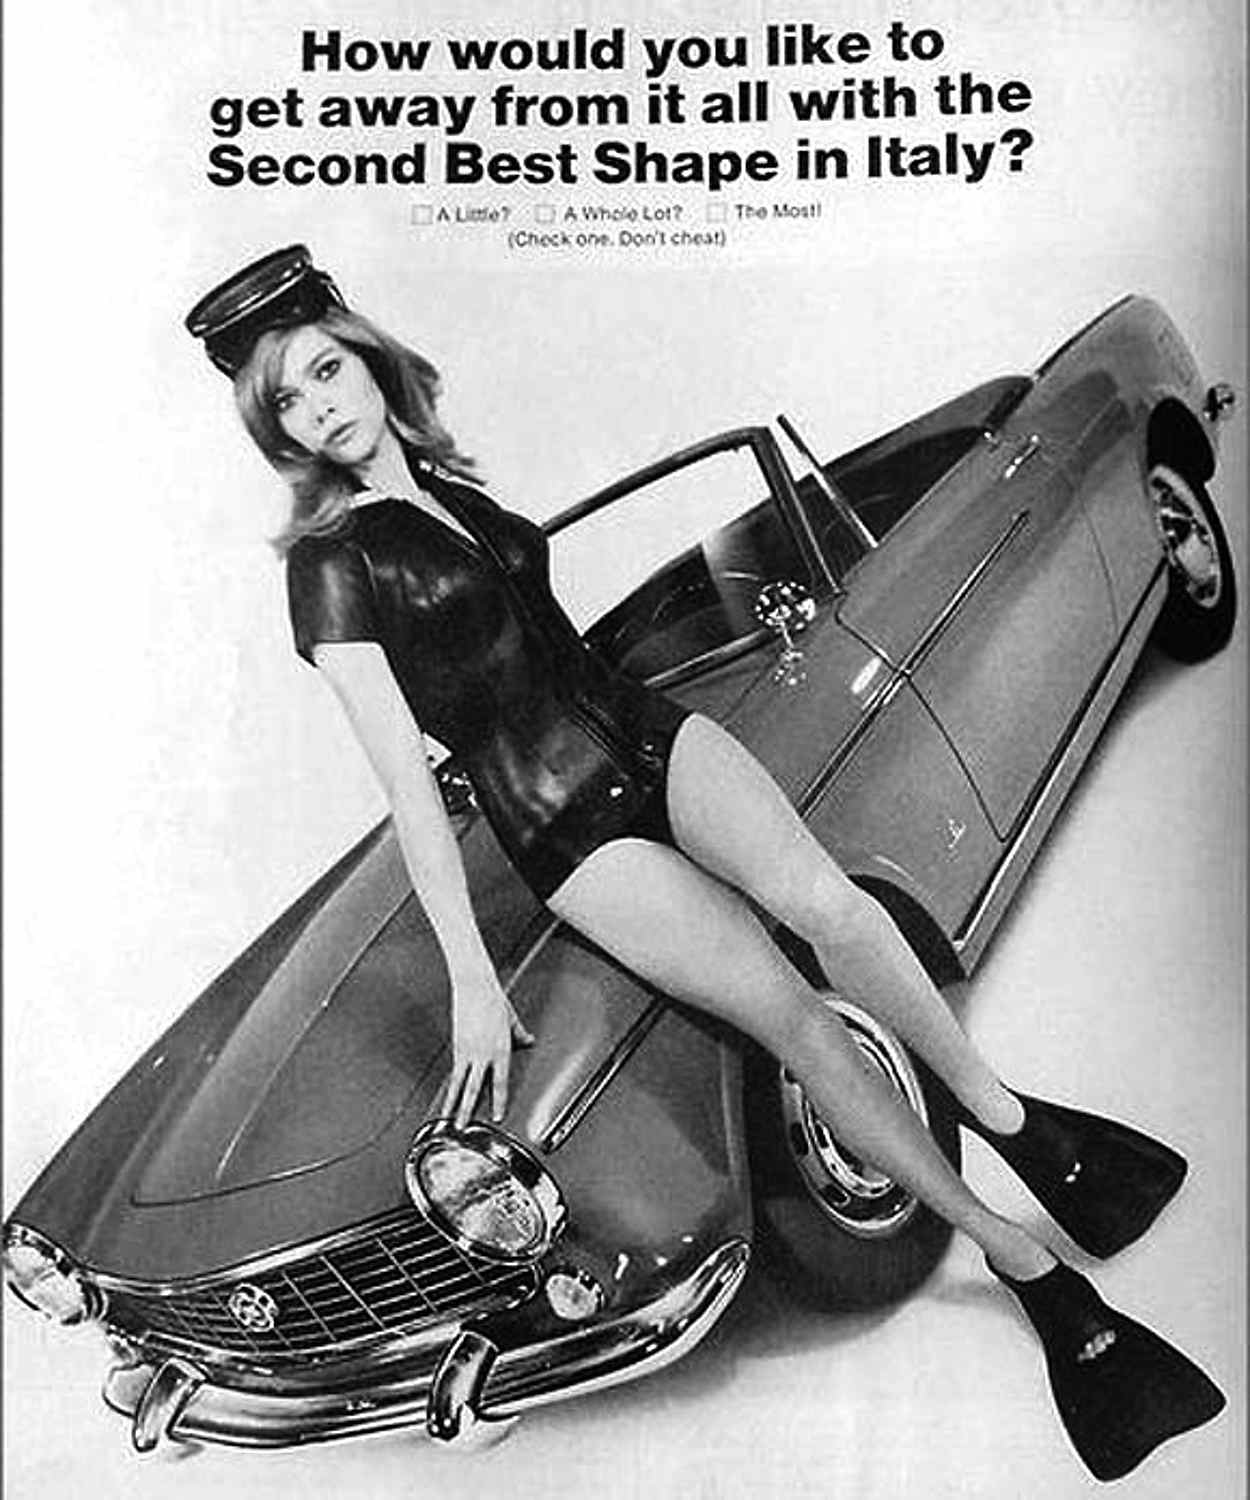 Second Best Shape In Italy